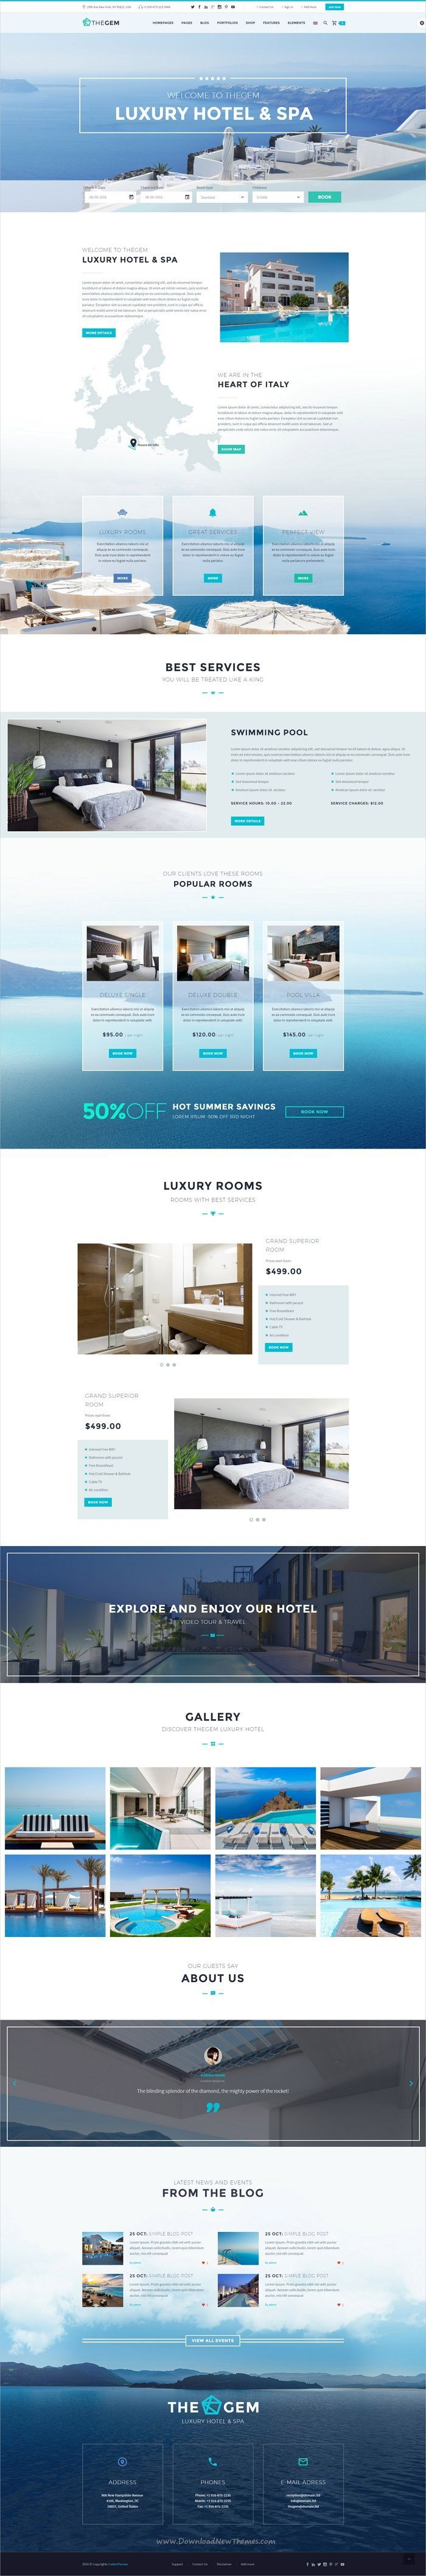 TheGem is creative multipurpose #PSD template for awesome #hotels #resorts websites and huge variety of design or web projects with 50+ homepage layouts & 200+ layered PSD files download now➩ https://themeforest.net/item/thegem-creative-multipurpose-psd-template/19746346?ref=Datasata